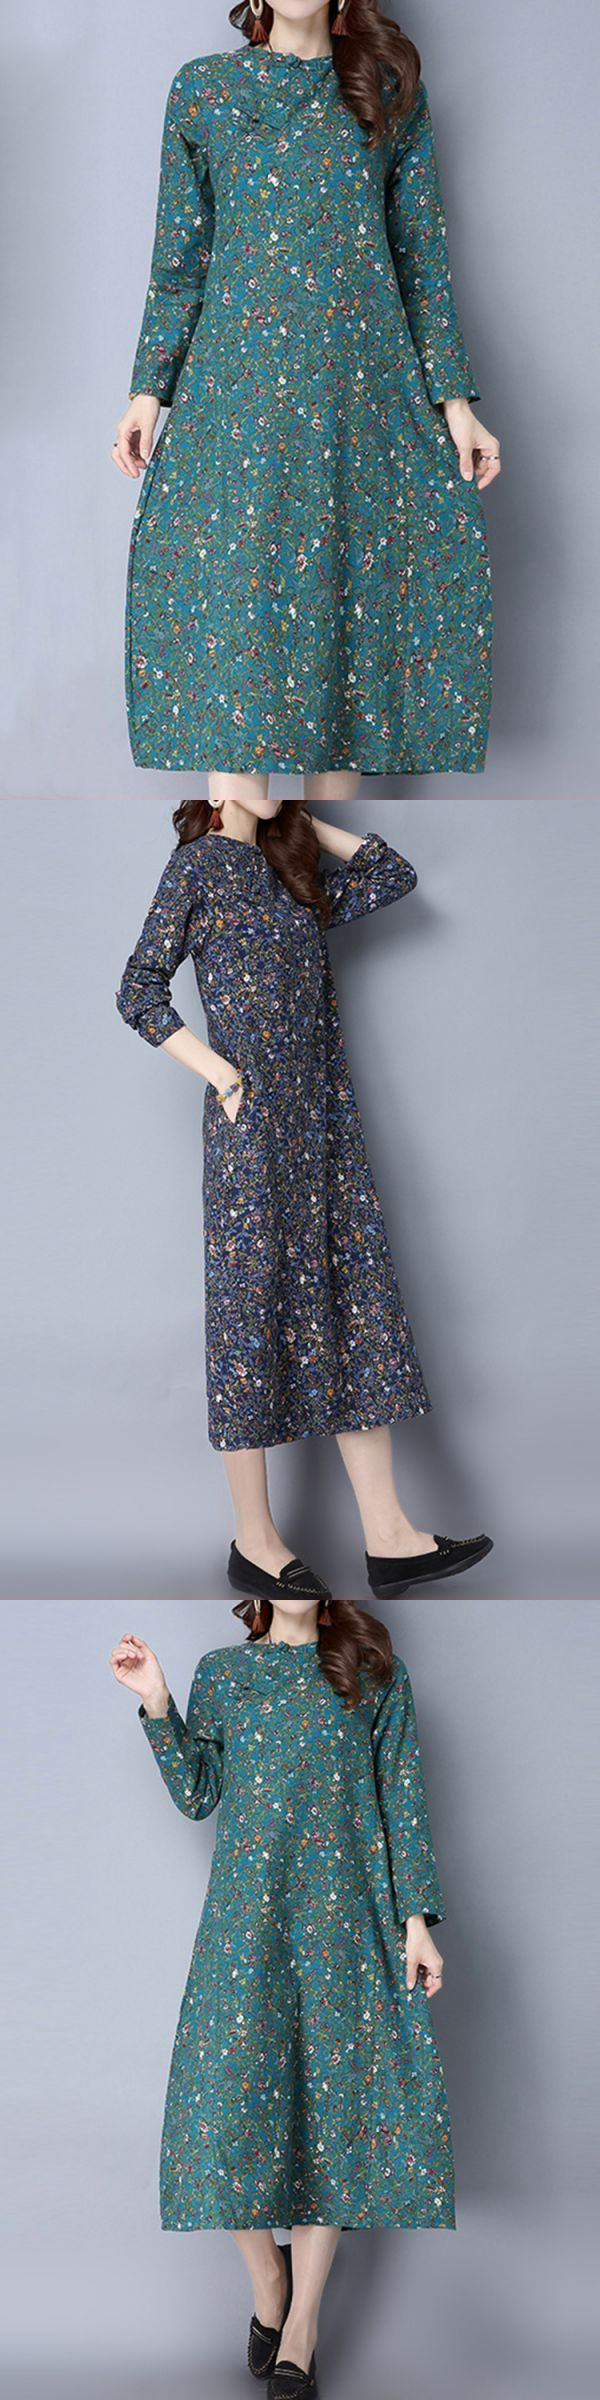 Floral dresses 2015 uk chinese style women floral printed plate buttons long sleeve vintage dresses #floral #dresses #for #sale #floral #dresses #ted #baker #floral #dresses #xl #floral #dresses #zalora